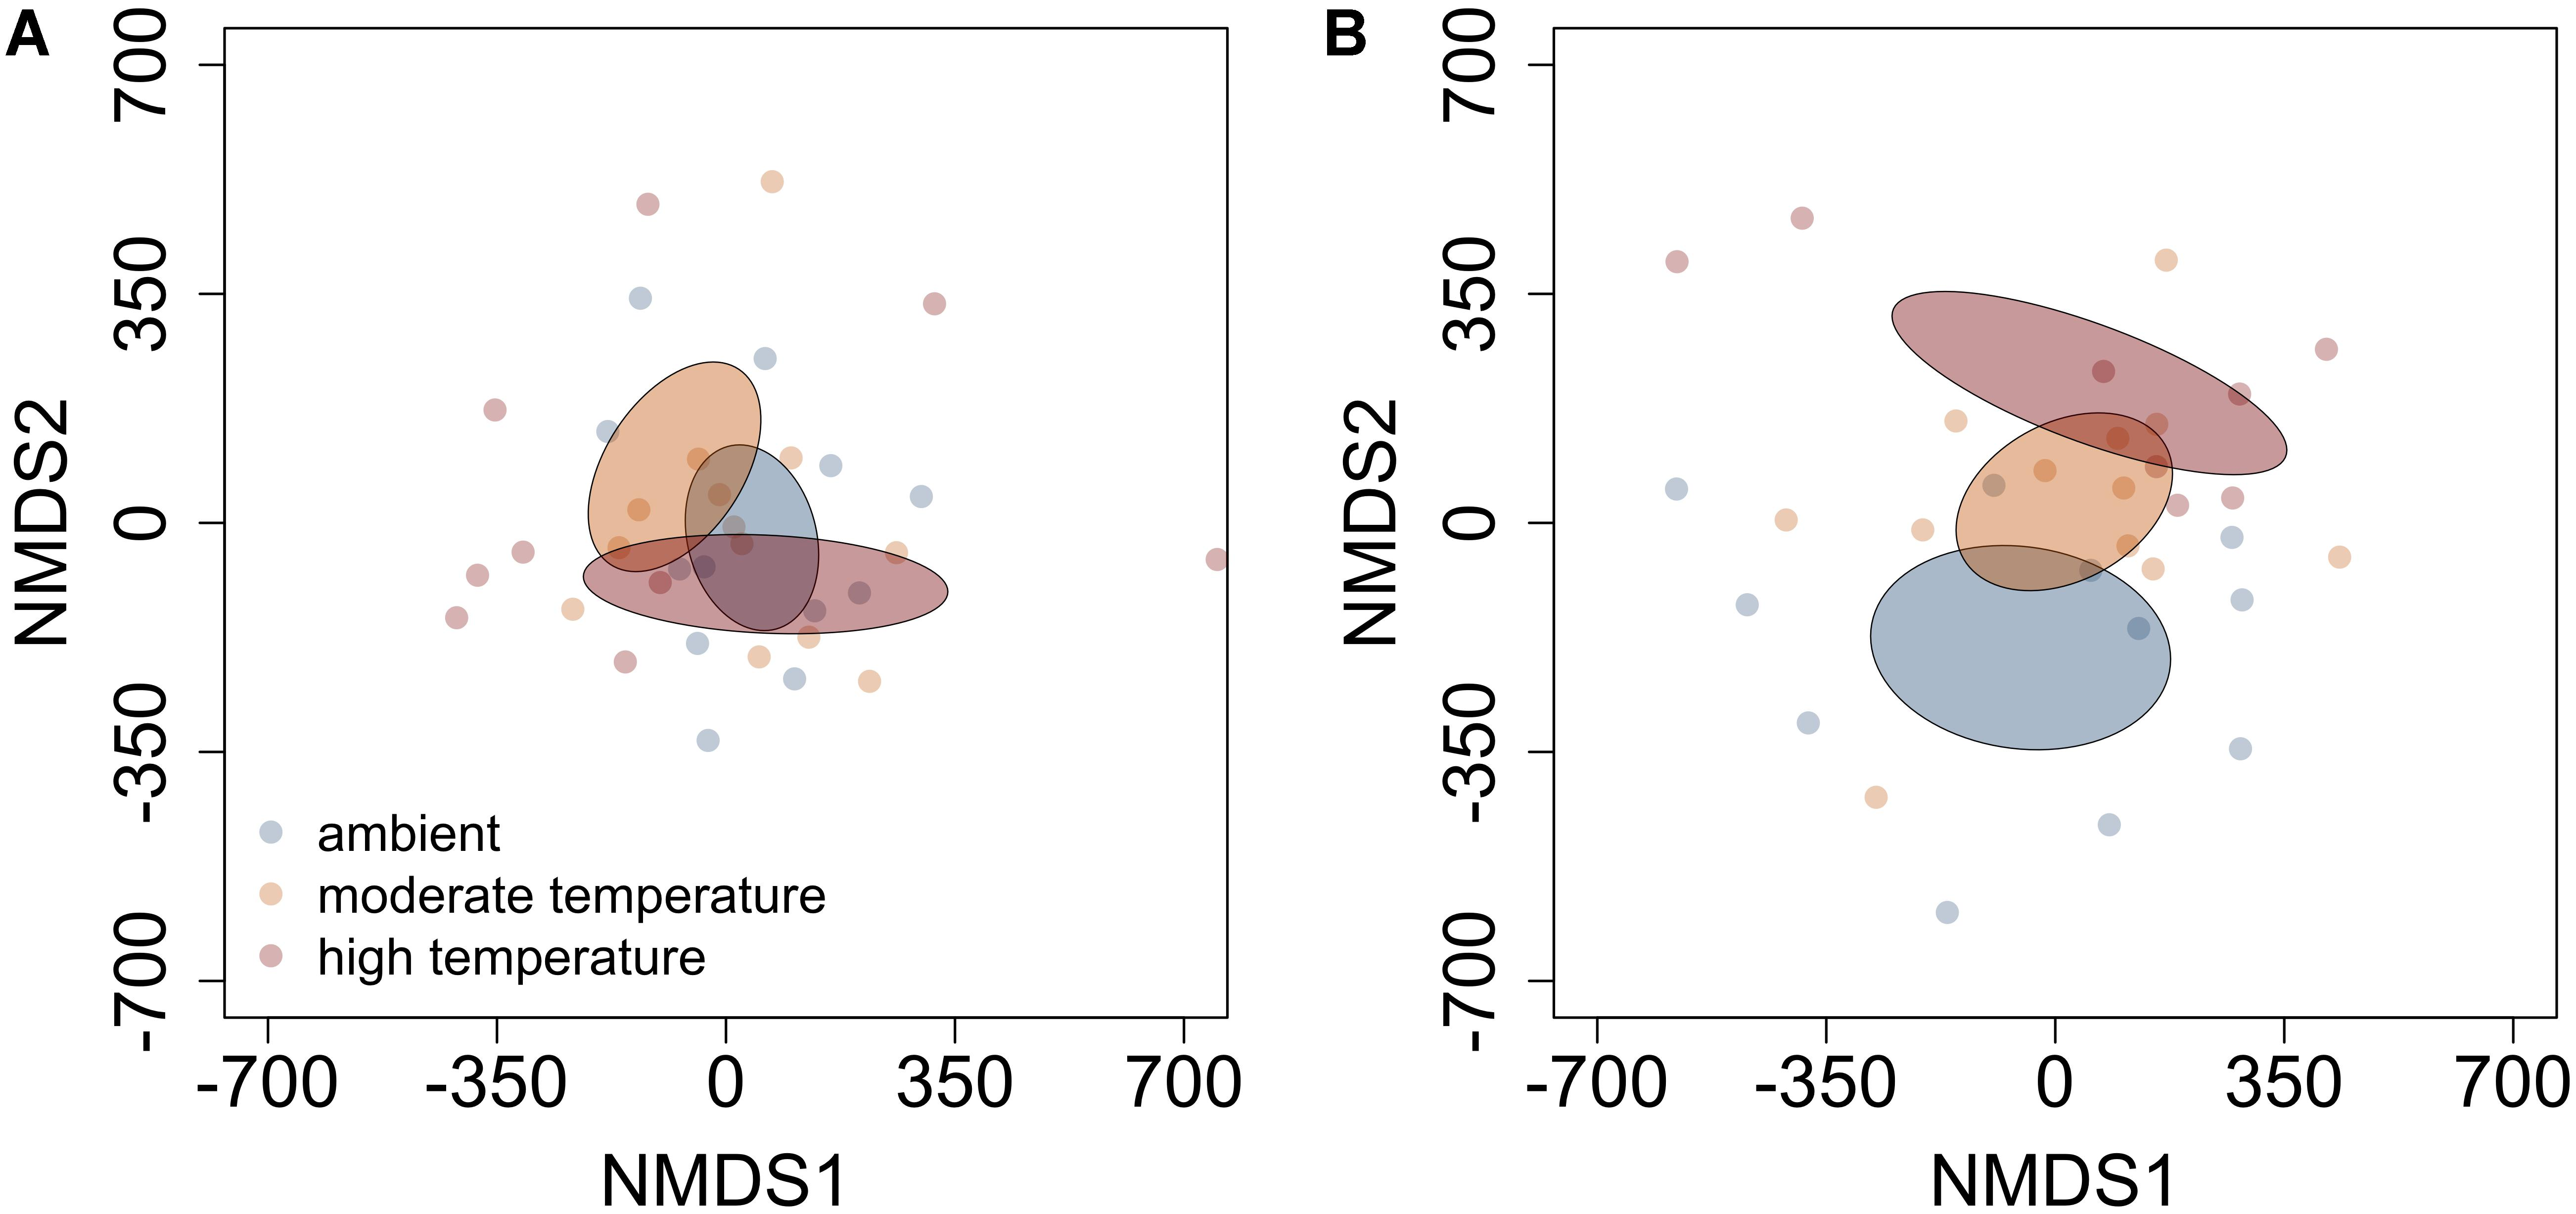 Frontiers | Combinations of Abiotic Factors Differentially